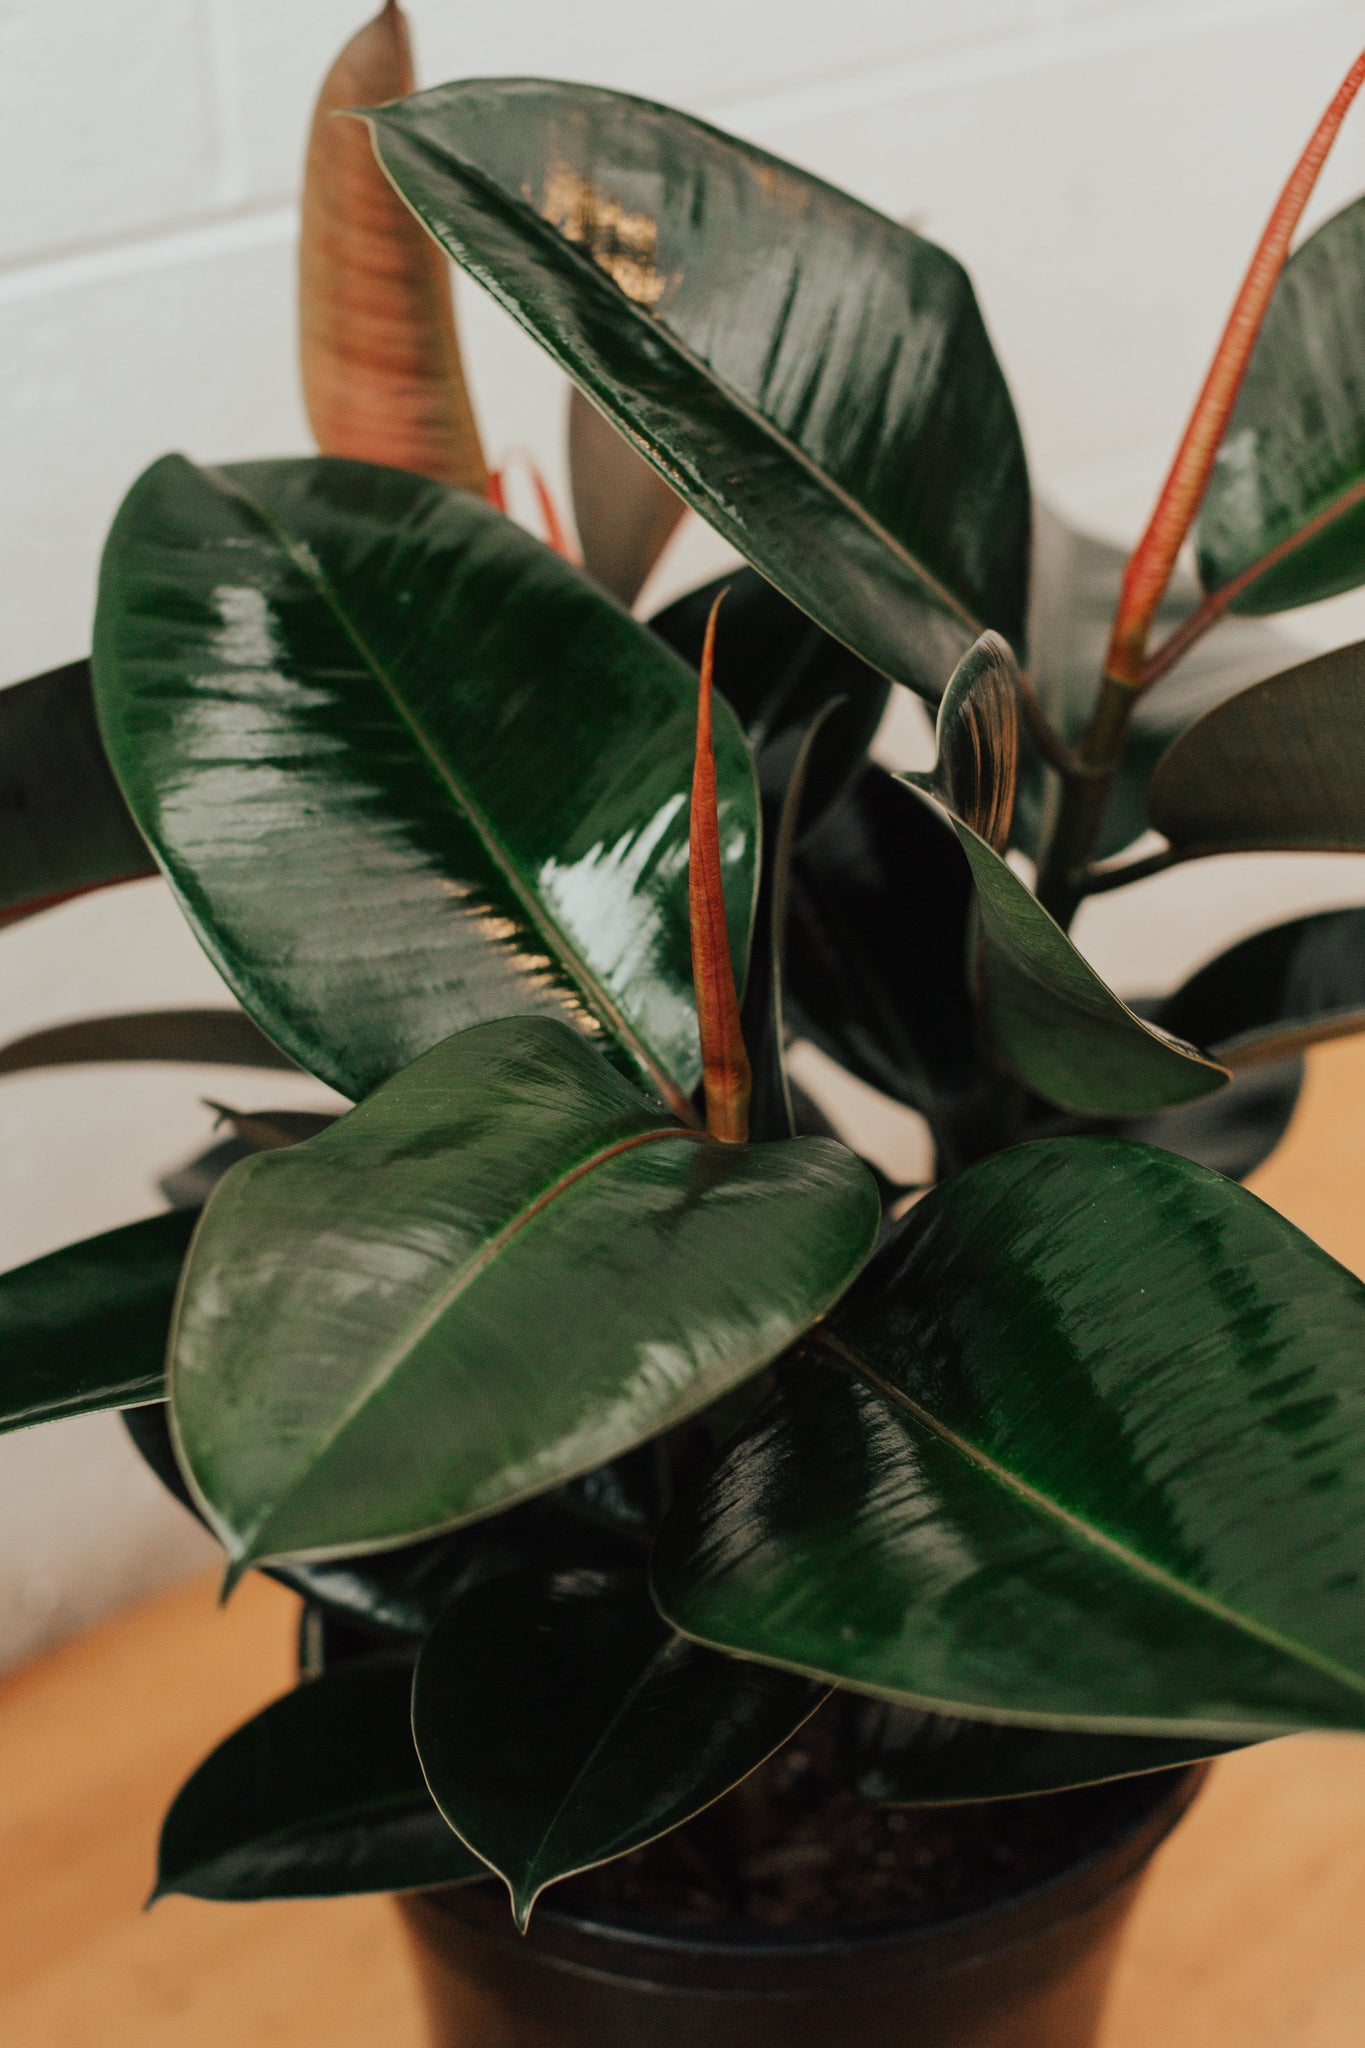 Ficus Robusta (Rubber Plant)